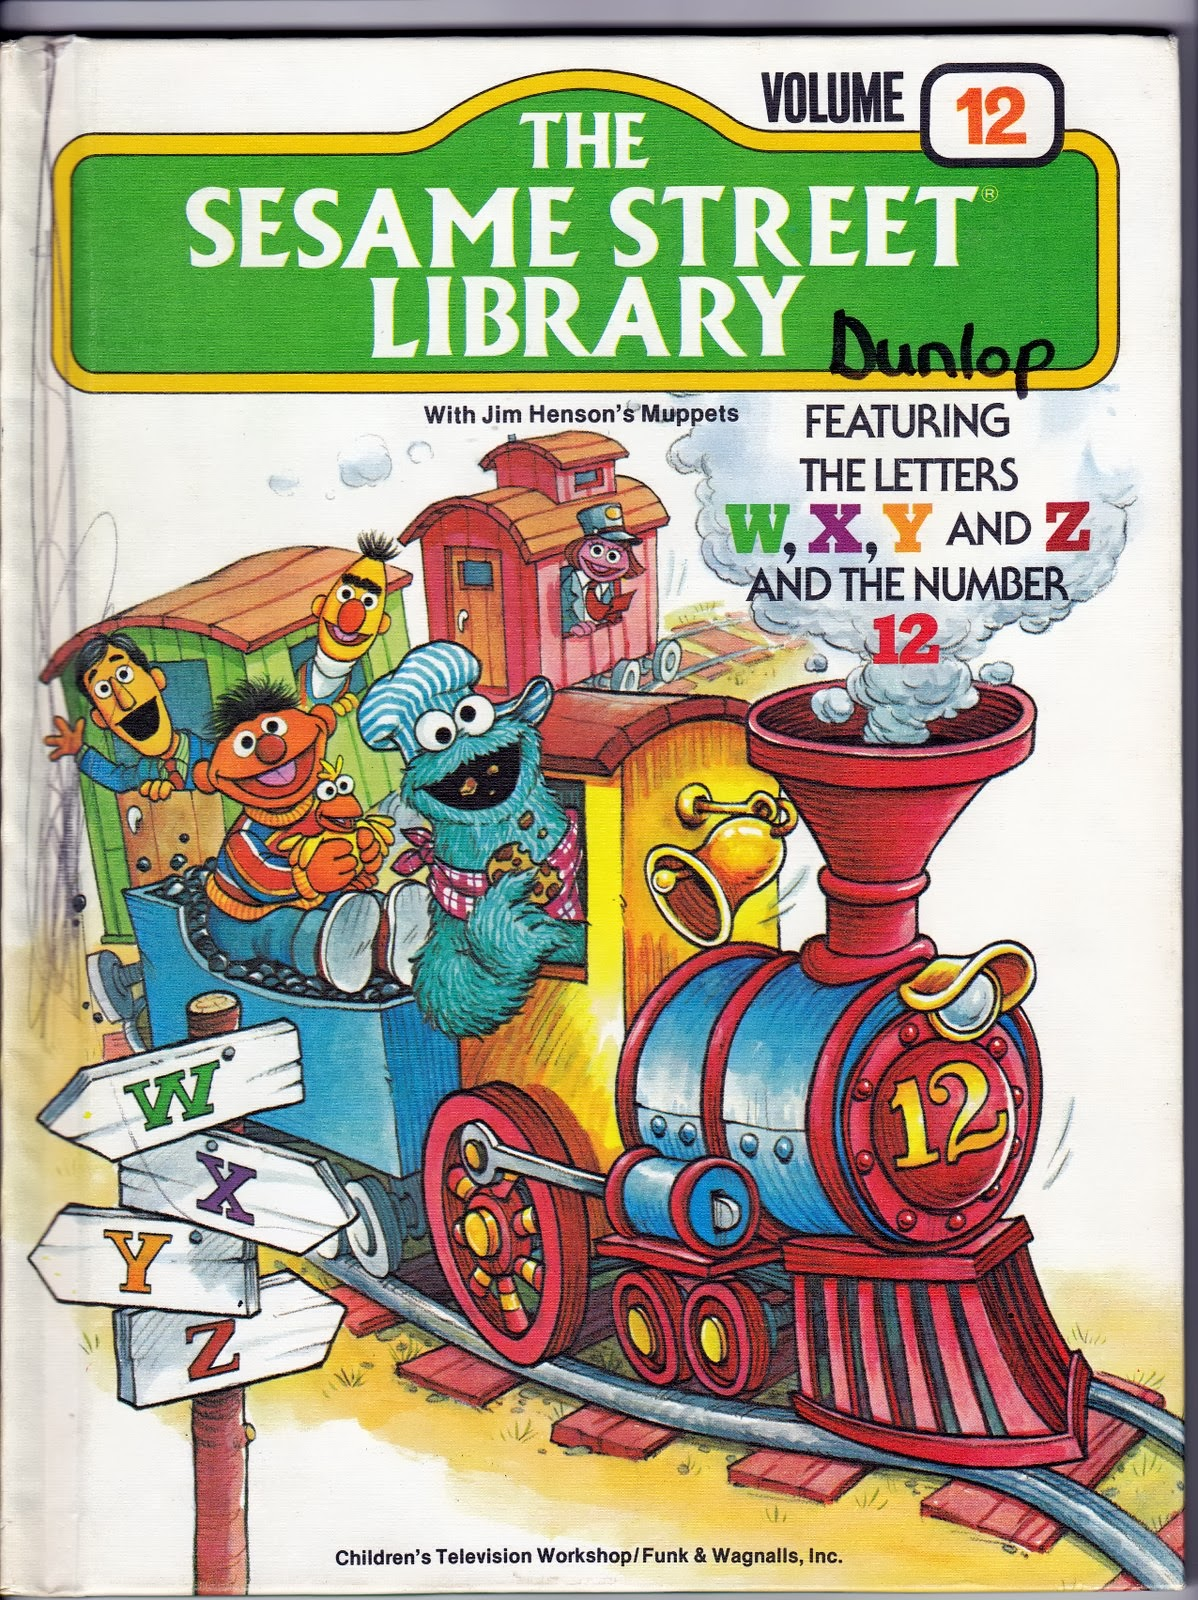 5 'Sesame Street' kids books to help with life's biggest moments